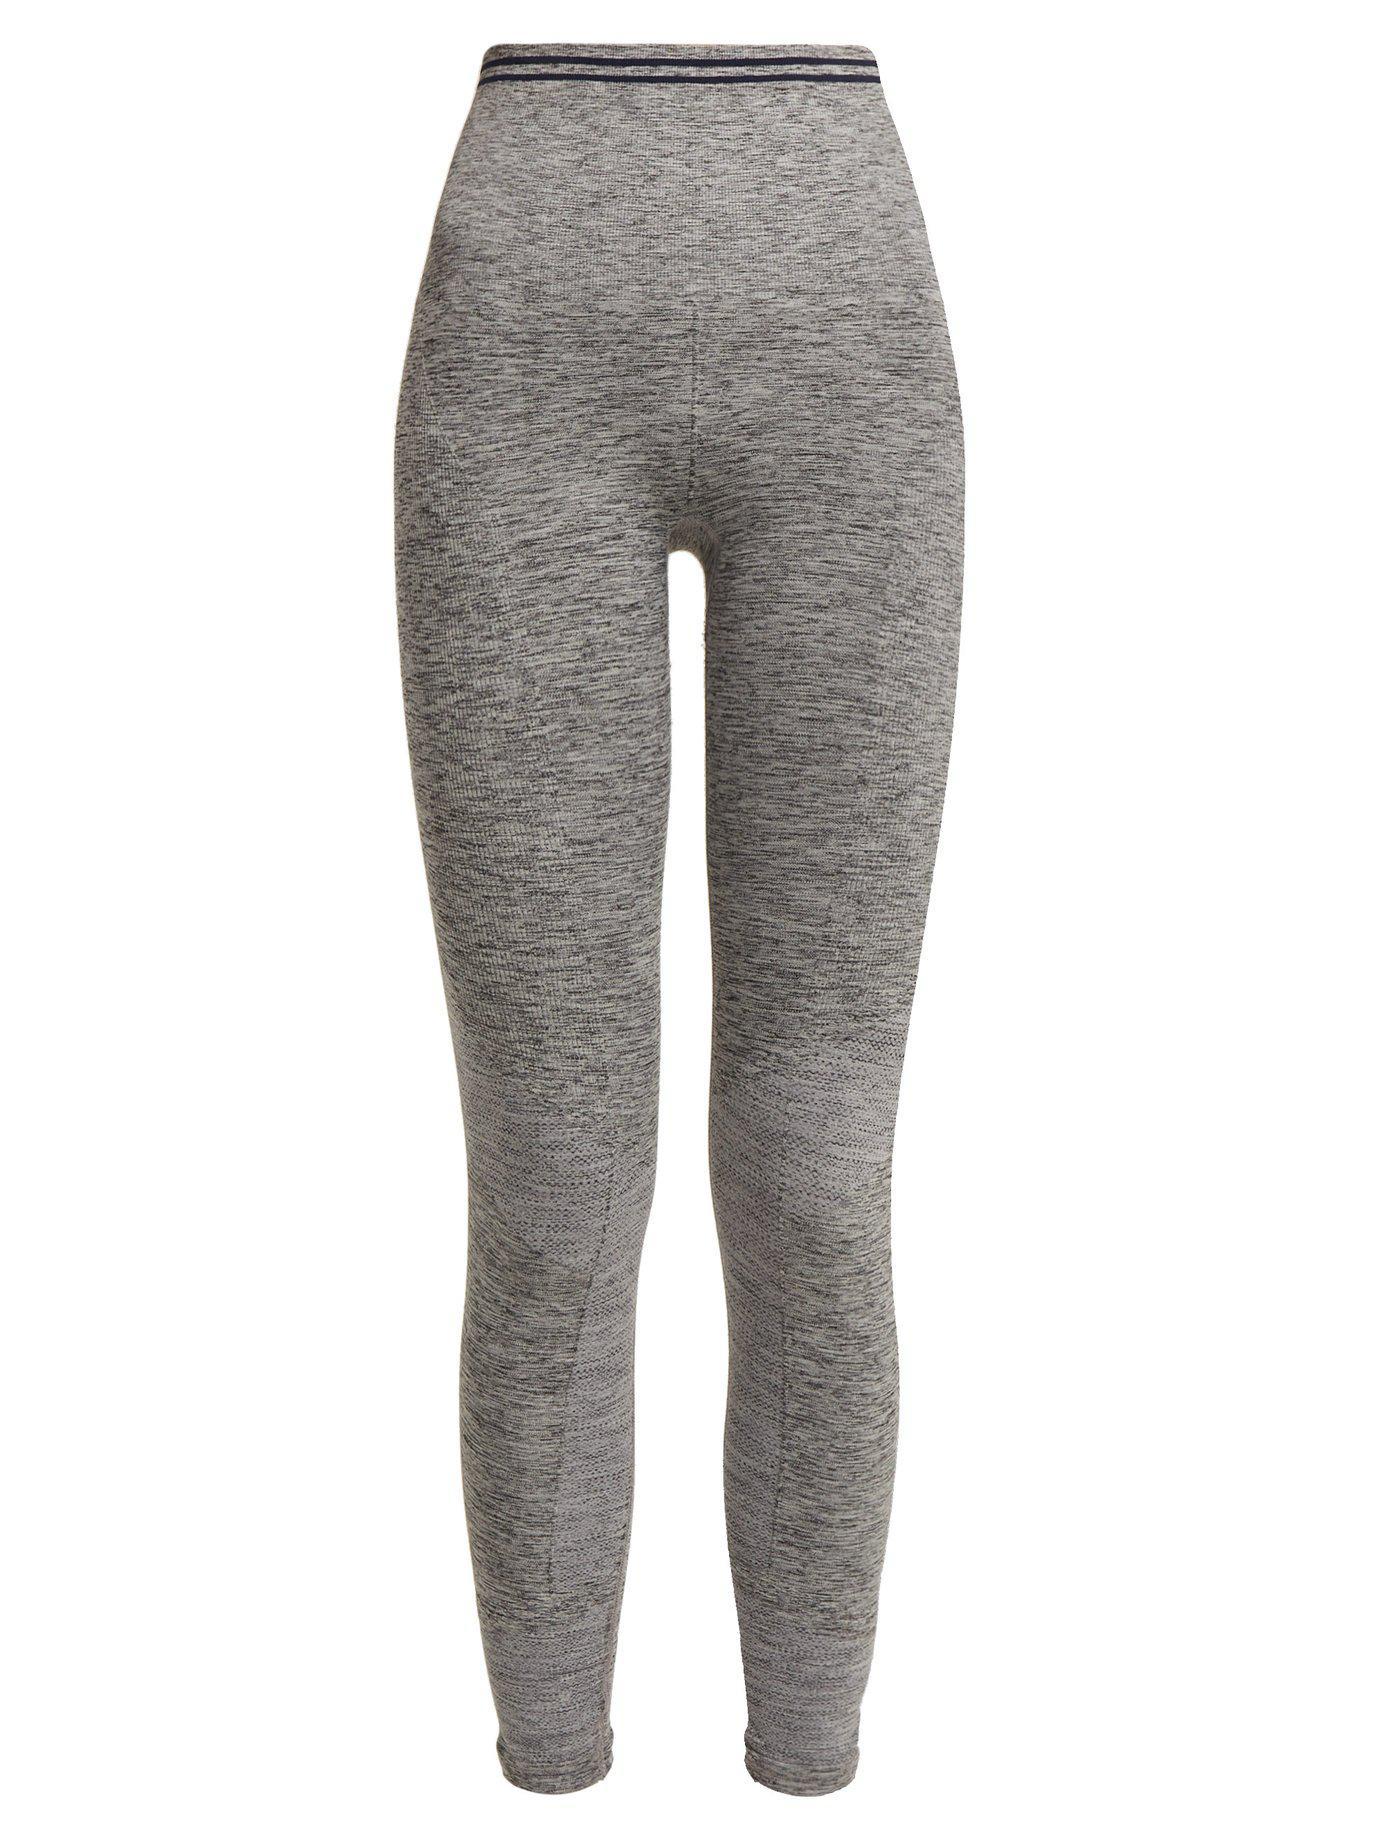 fae227b532df1b Lyst - LNDR Seven Eight Seamless Leggings in Gray - Save 33%